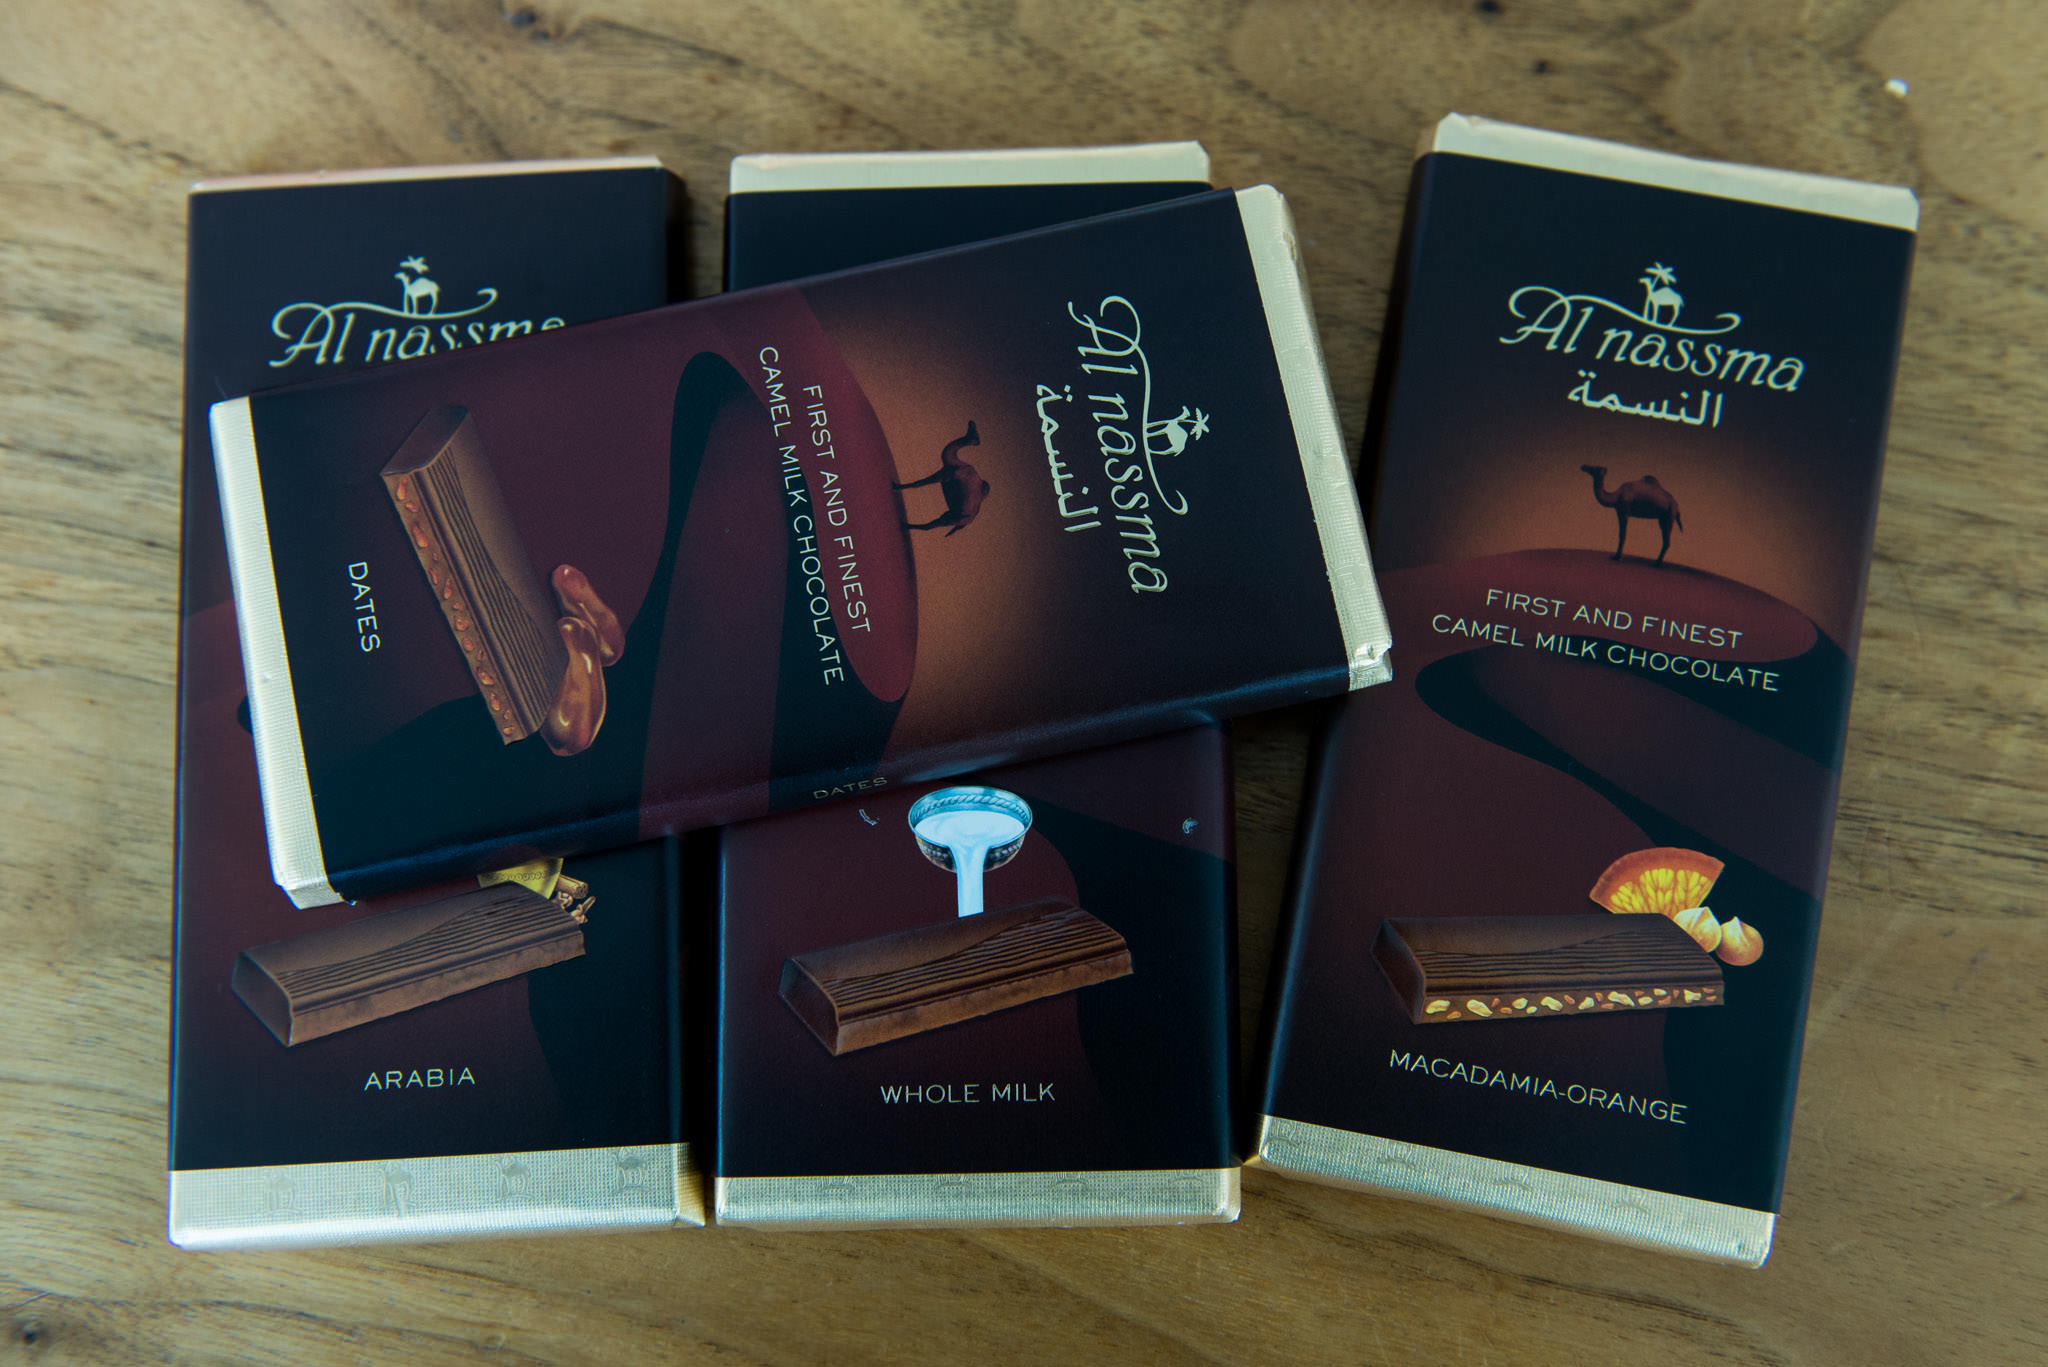 Camel milk chocolate